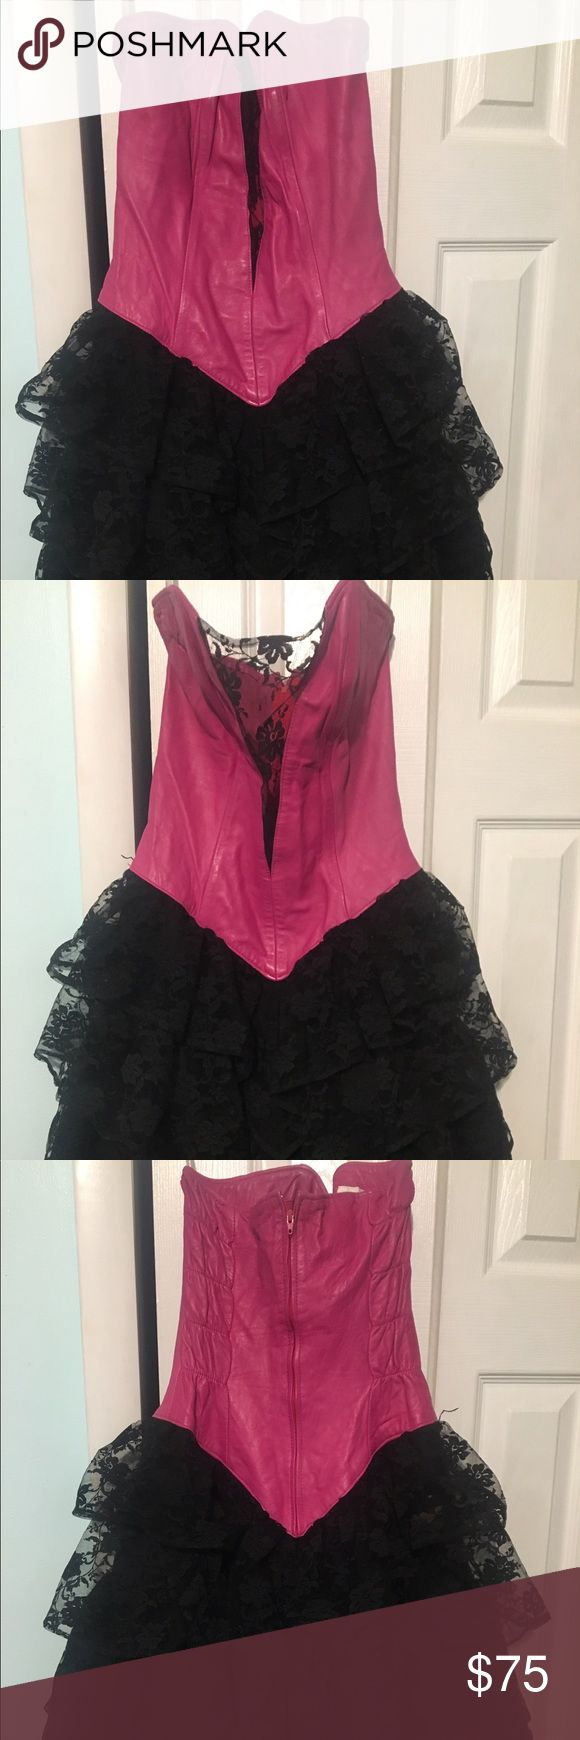 Vintage 80's prom dress 100% leather vintage 80's dress  Great condition fits a size Small Dresses Strapless